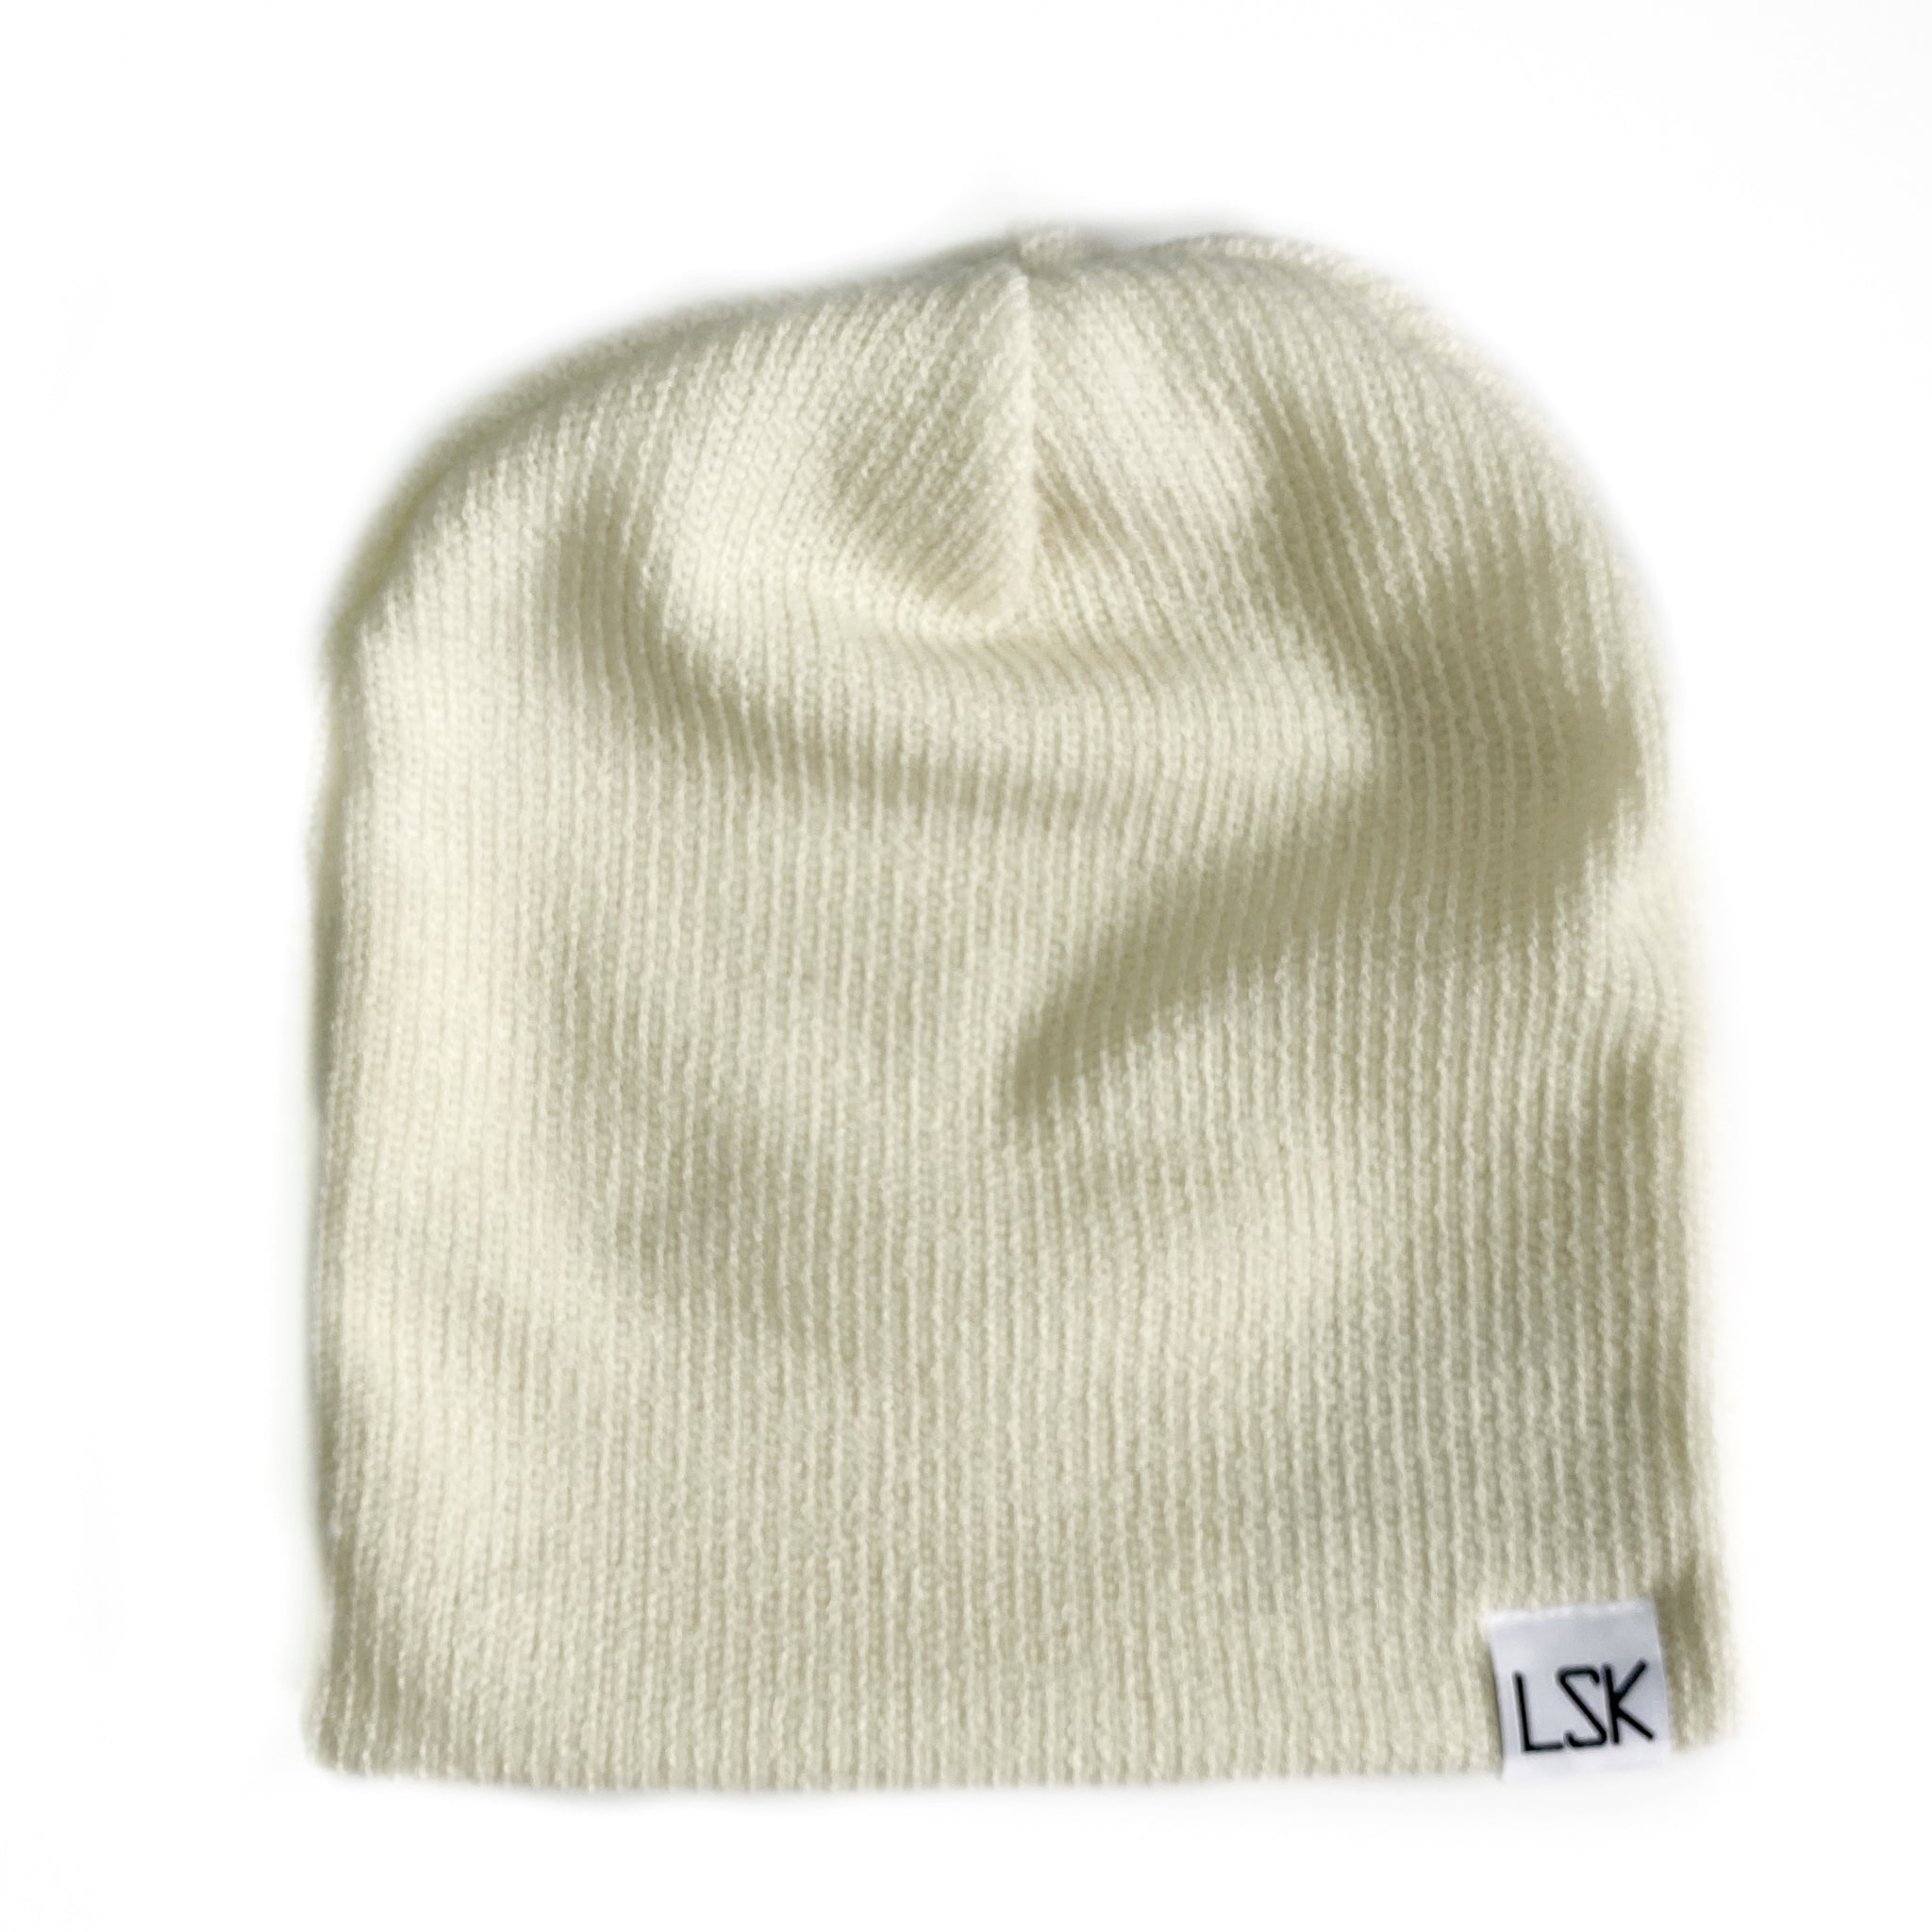 Cream Ribbed Sweater Knit Slouchy Beanie